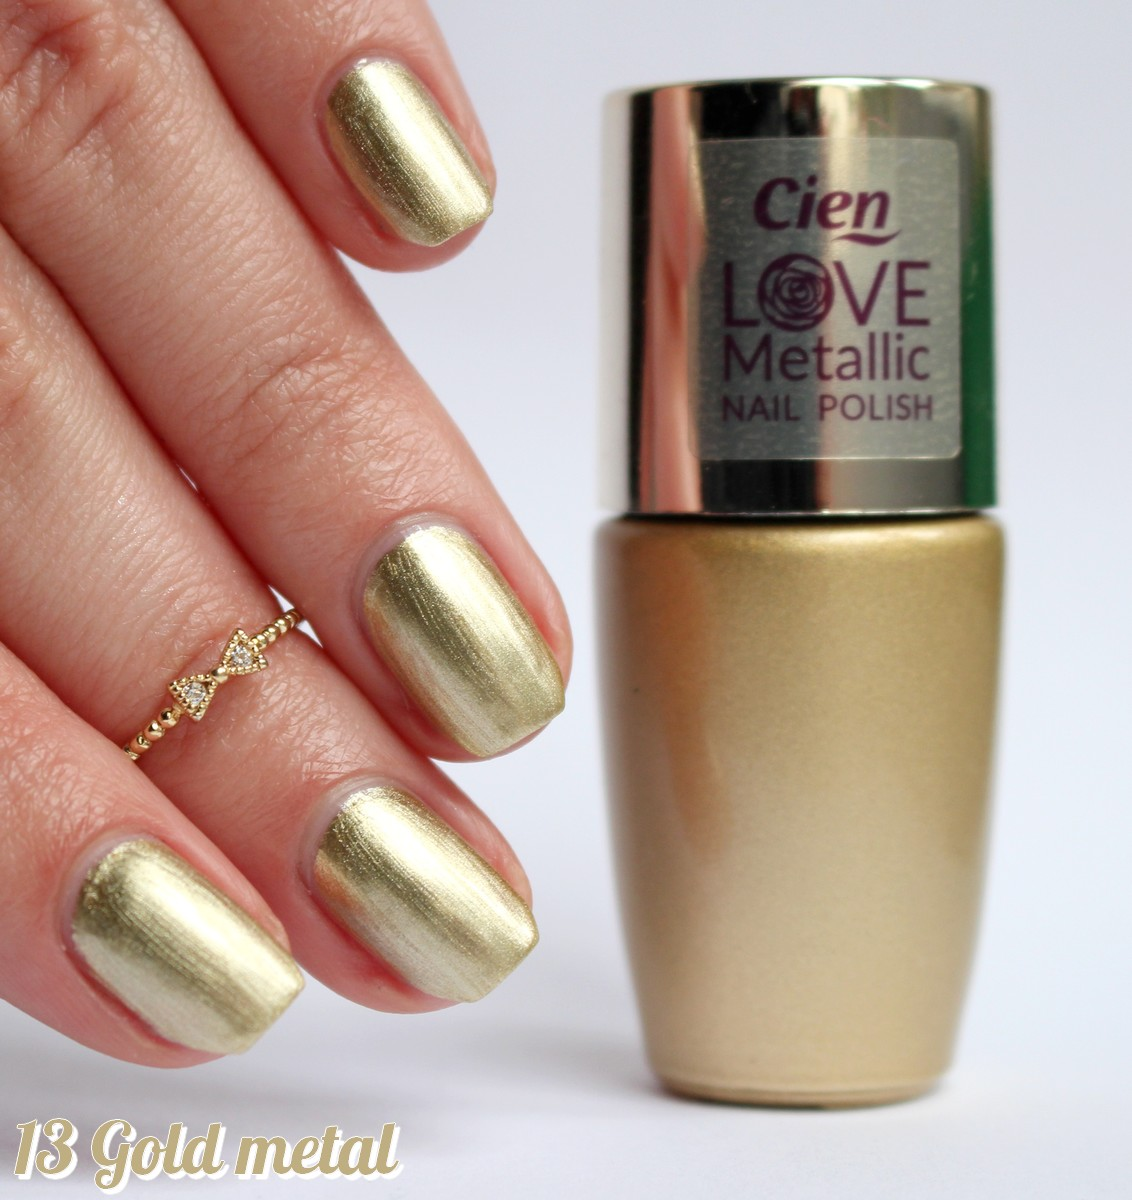 vernis-lidl-cien-love-stories-13-gold-metal